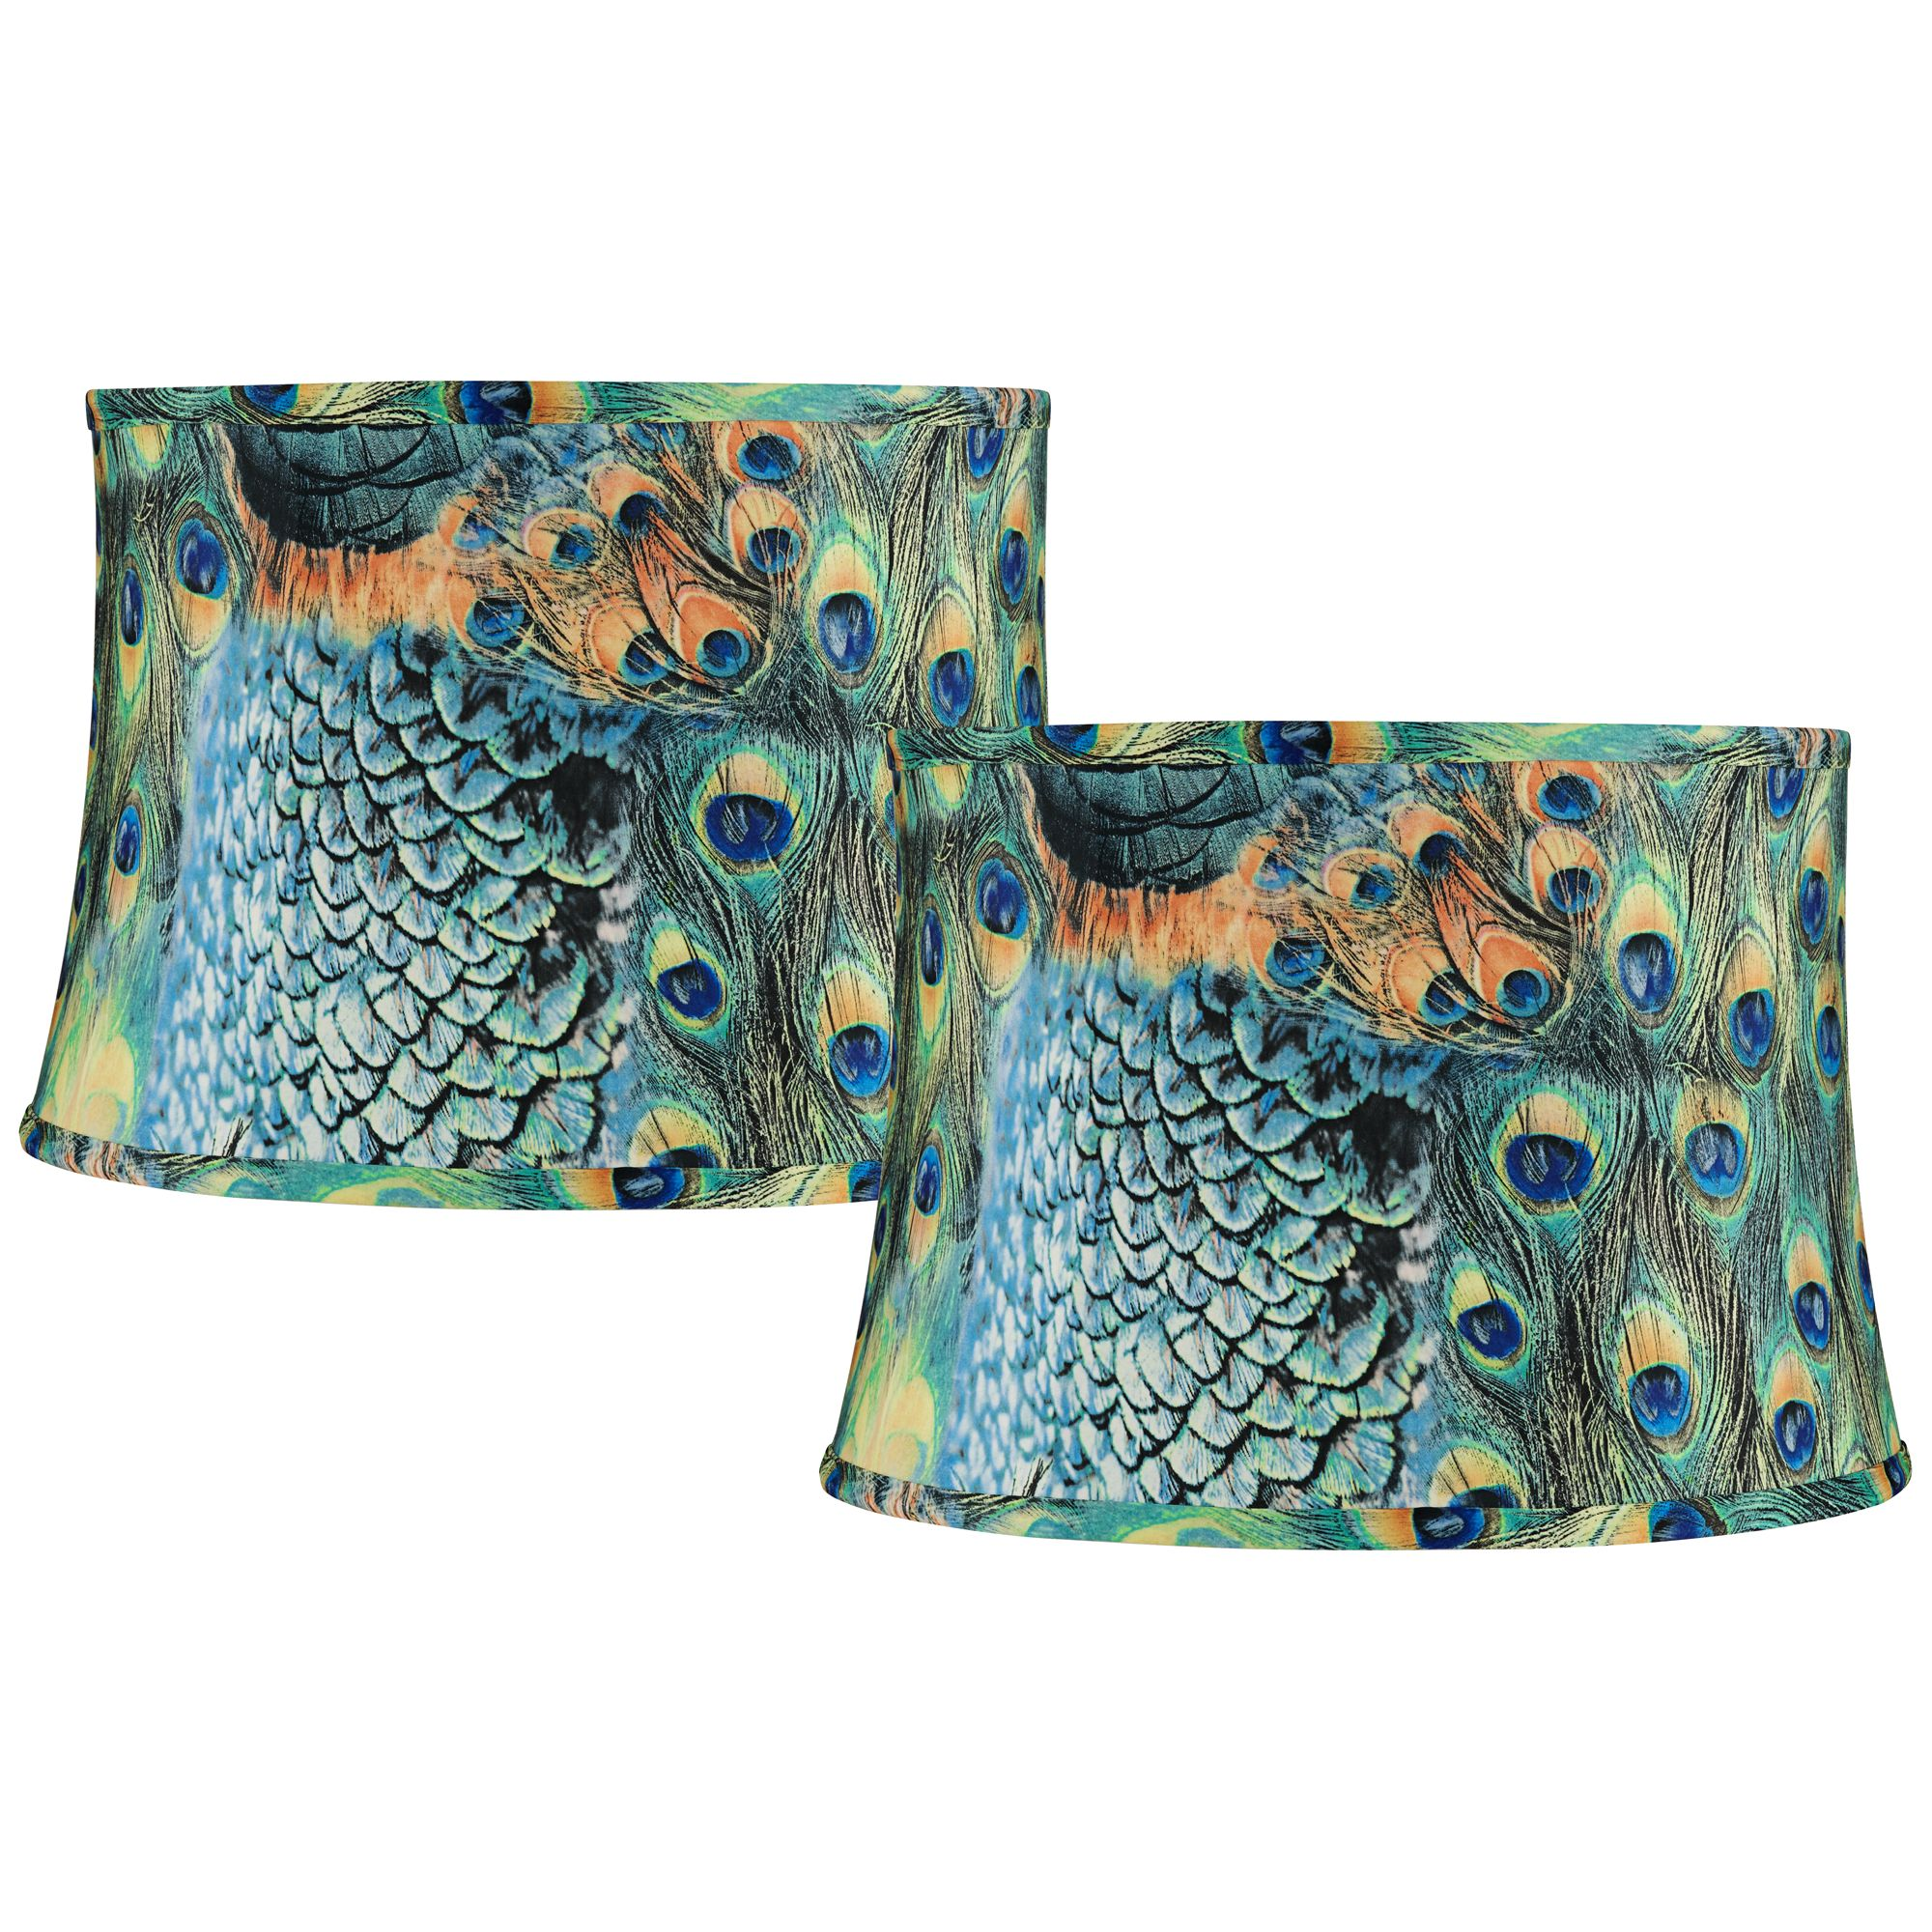 Springcrest Set of 2 Peacock Print Drum Lamp Shades 14x16x11 (Spider)